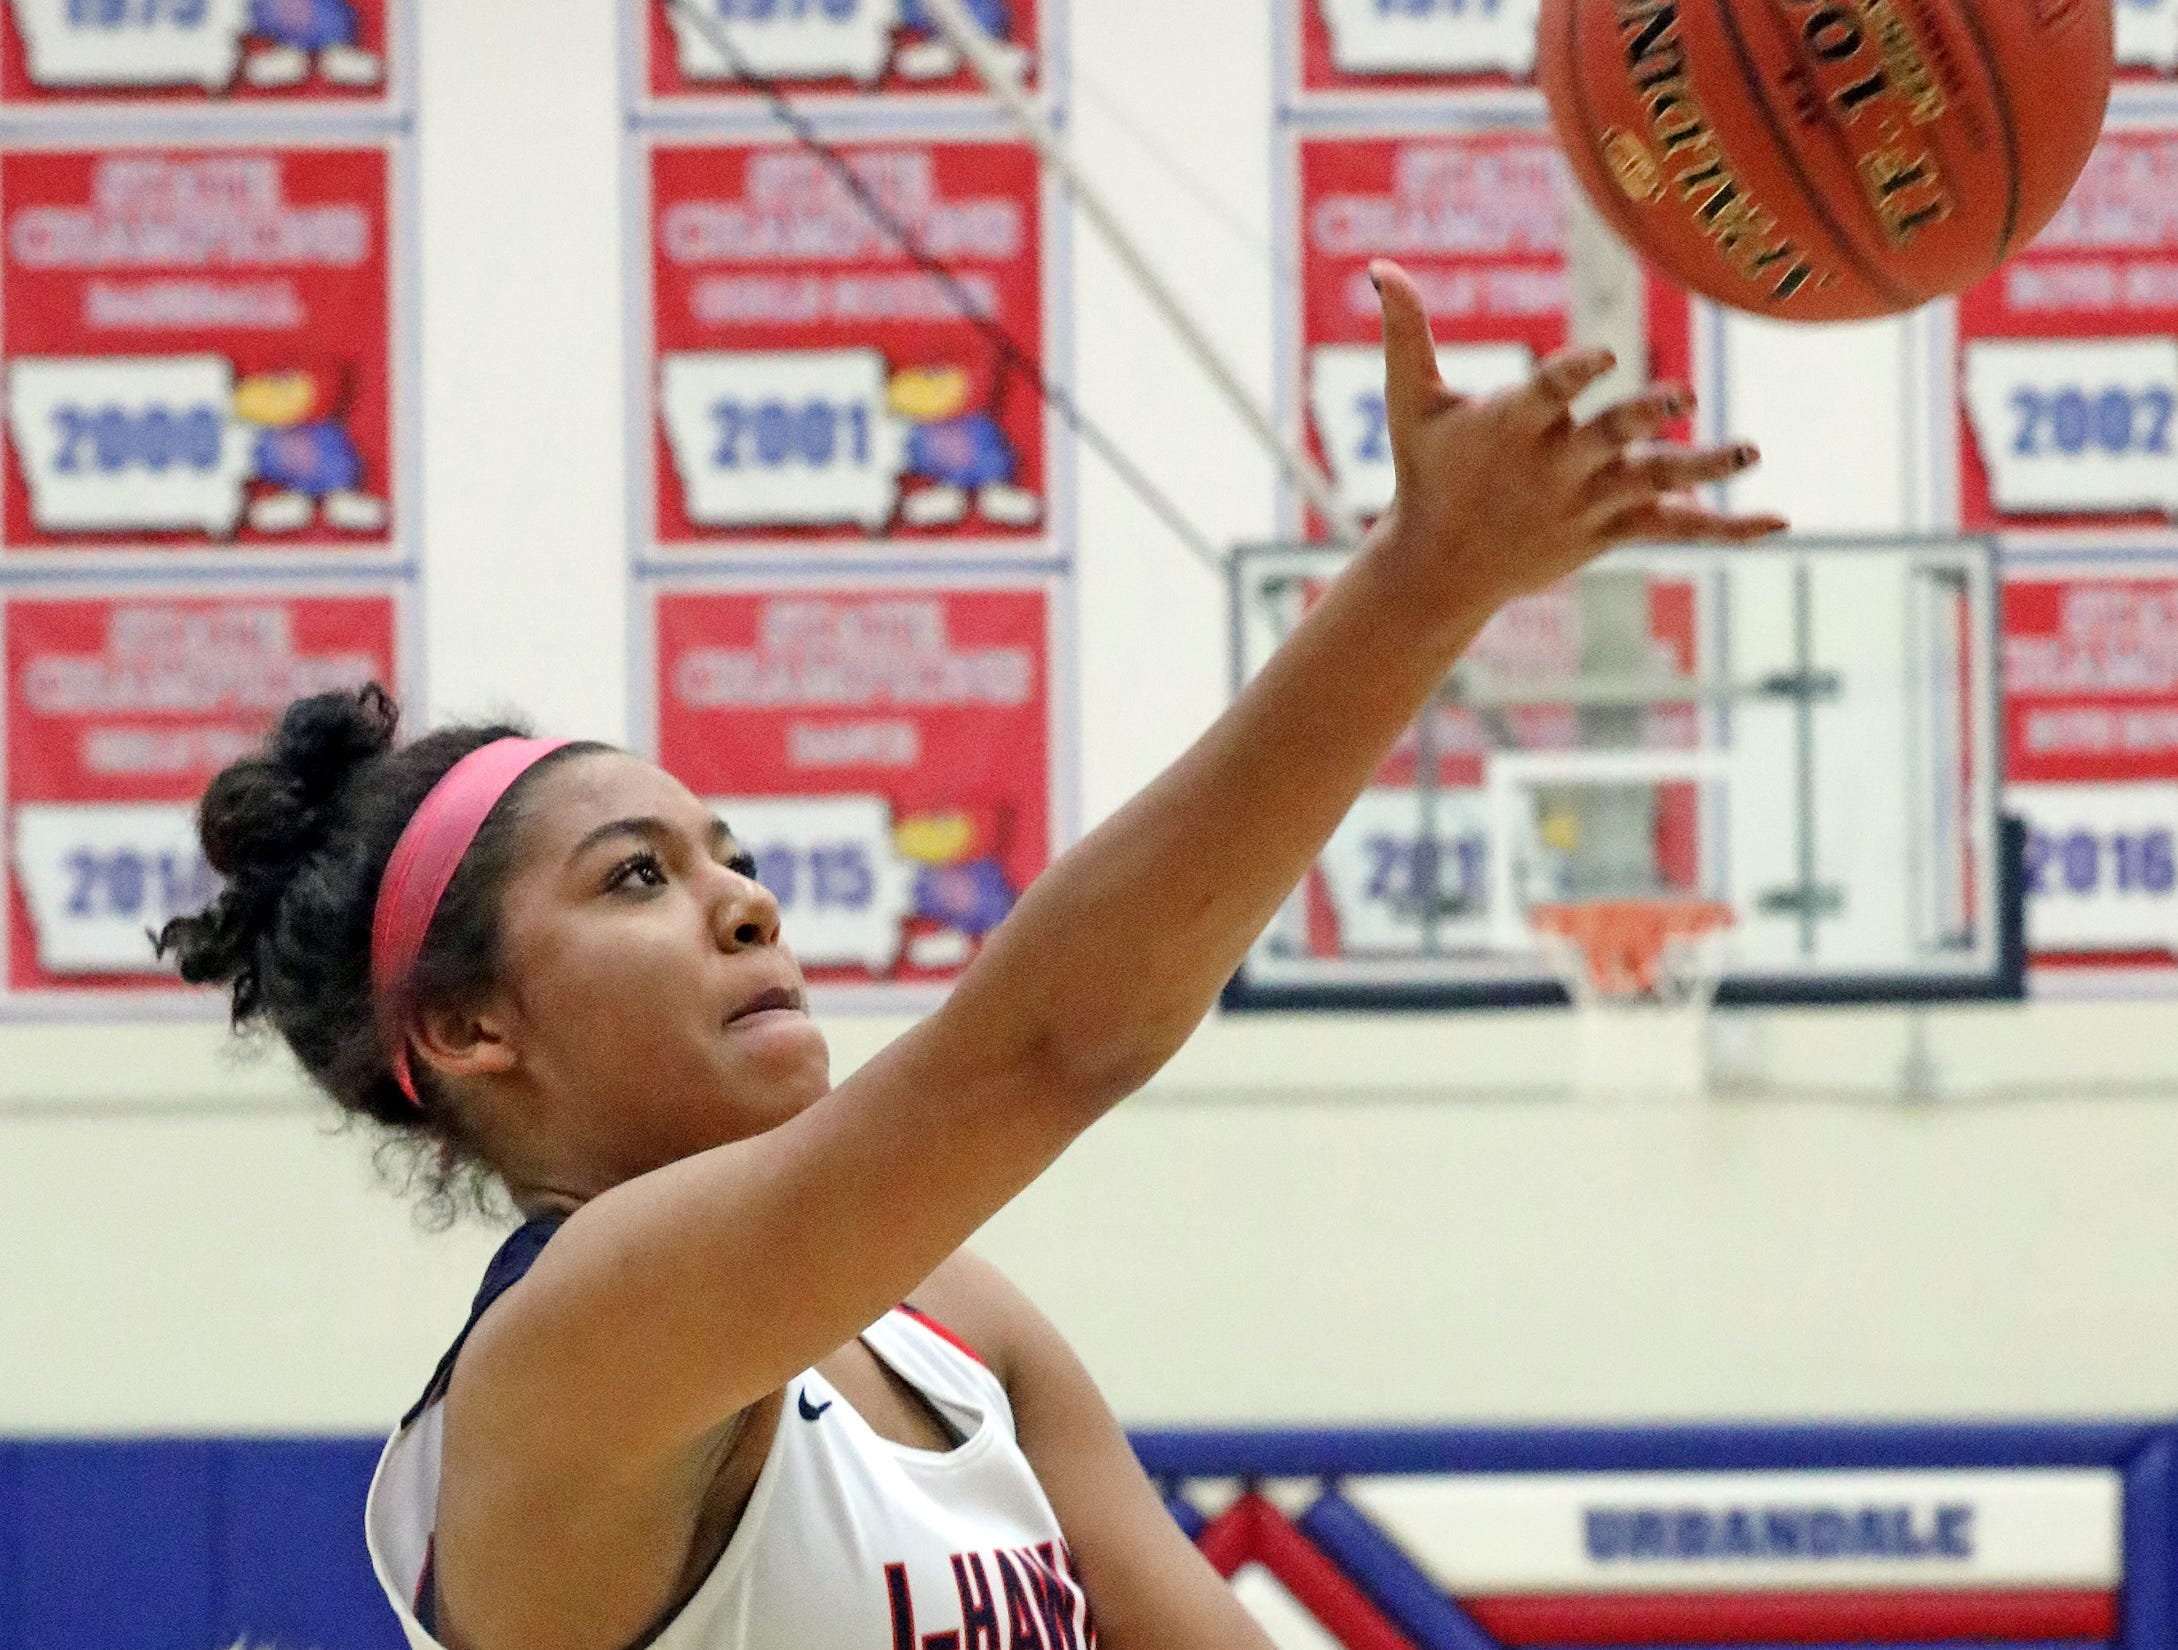 Urbandale freshman forward Jada Gyamfi drives in for another basket as the Ankeny Hawkettes compete against the Urbandale J-Hawks in high school basketball on Friday, Dec. 14, 2018 at Urbandale High School. Ankeny won 46 to 40.